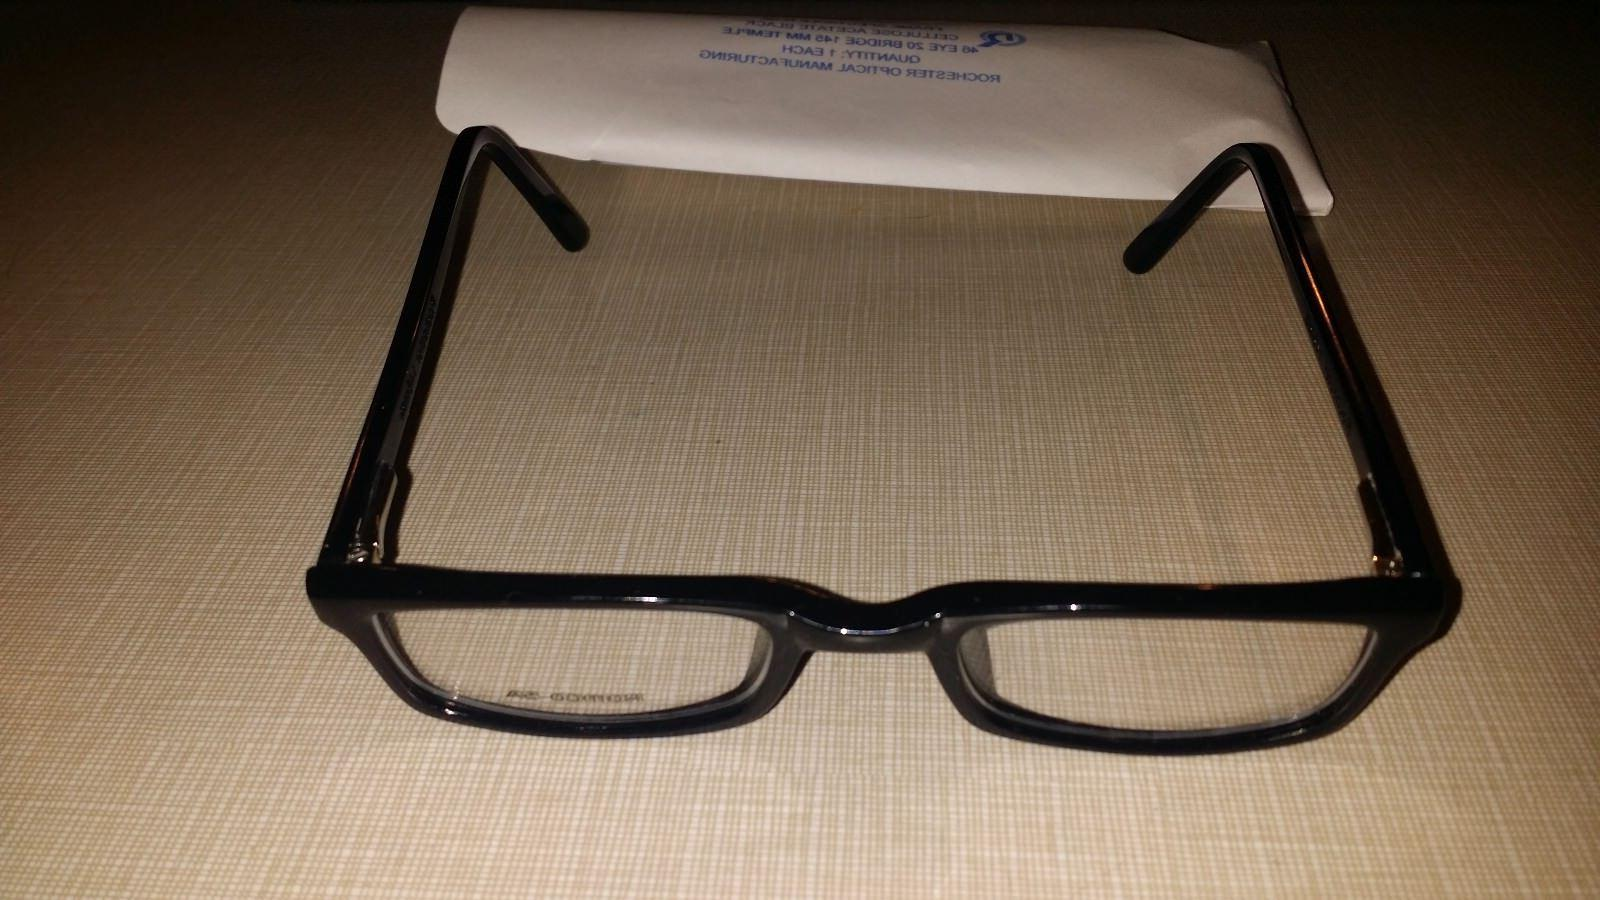 ROCHESTER OPTICAL R-5A FRAME SPECTACLE GLASSES